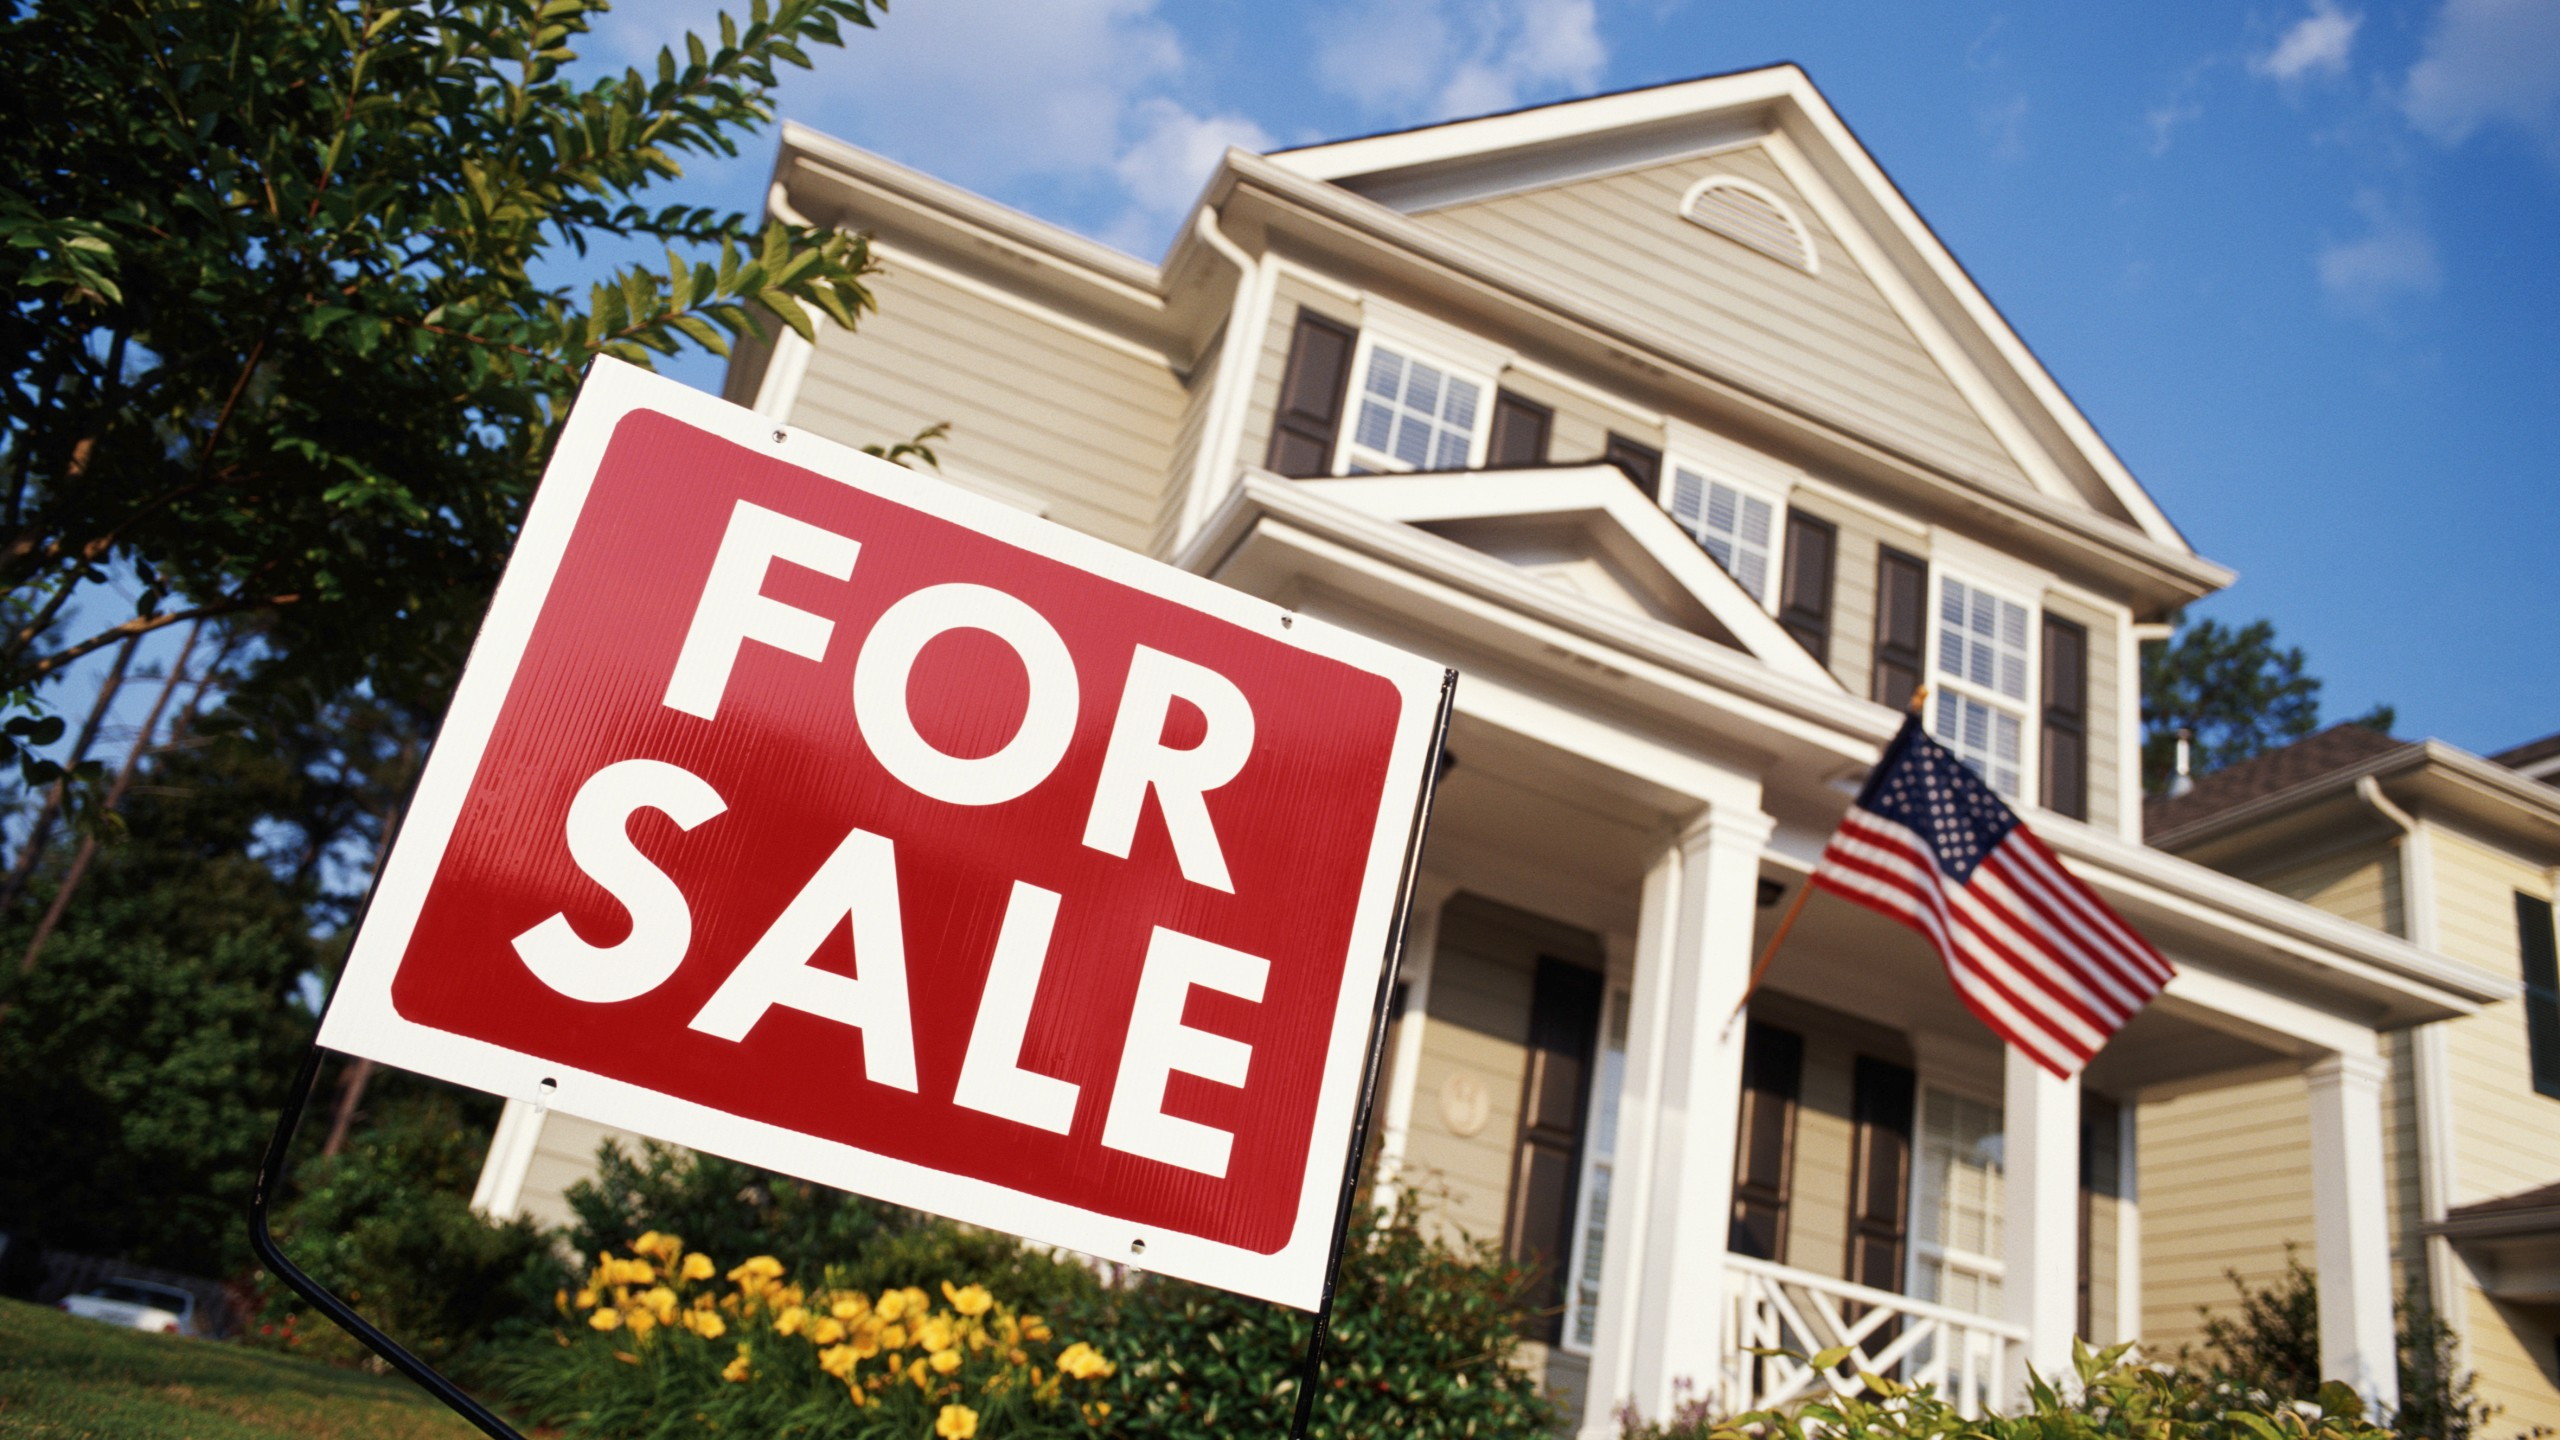 This file photo shows a home for sale. (Getty Images)